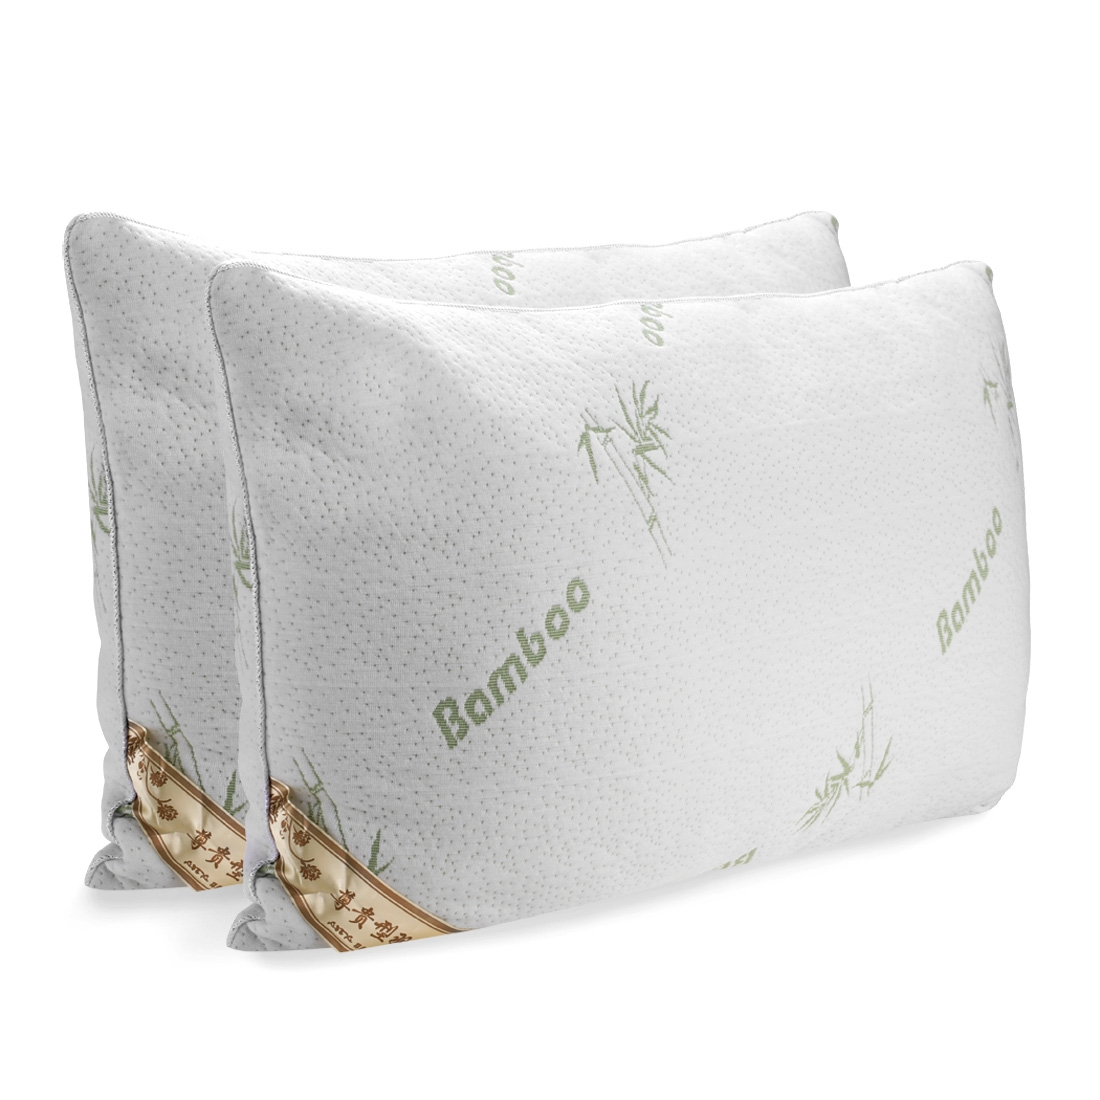 2-pack Comfort Sleep Bamboo Pillow Protection Neck Bed Pillows by